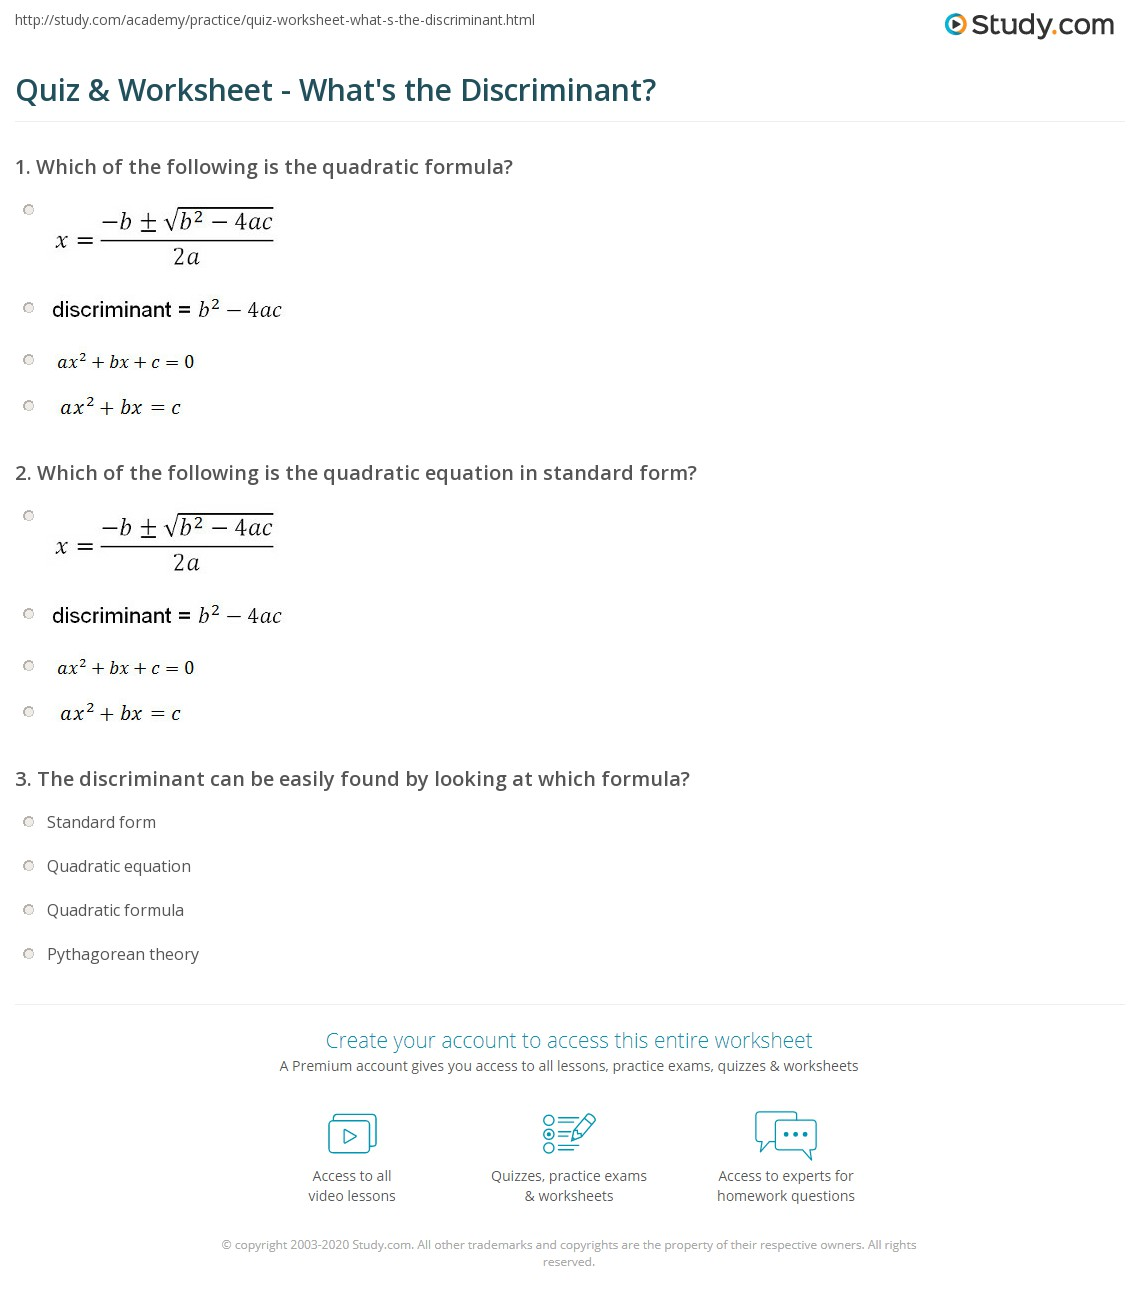 worksheet Discriminant Worksheet quiz worksheet whats the discriminant study com print definition explanation worksheet